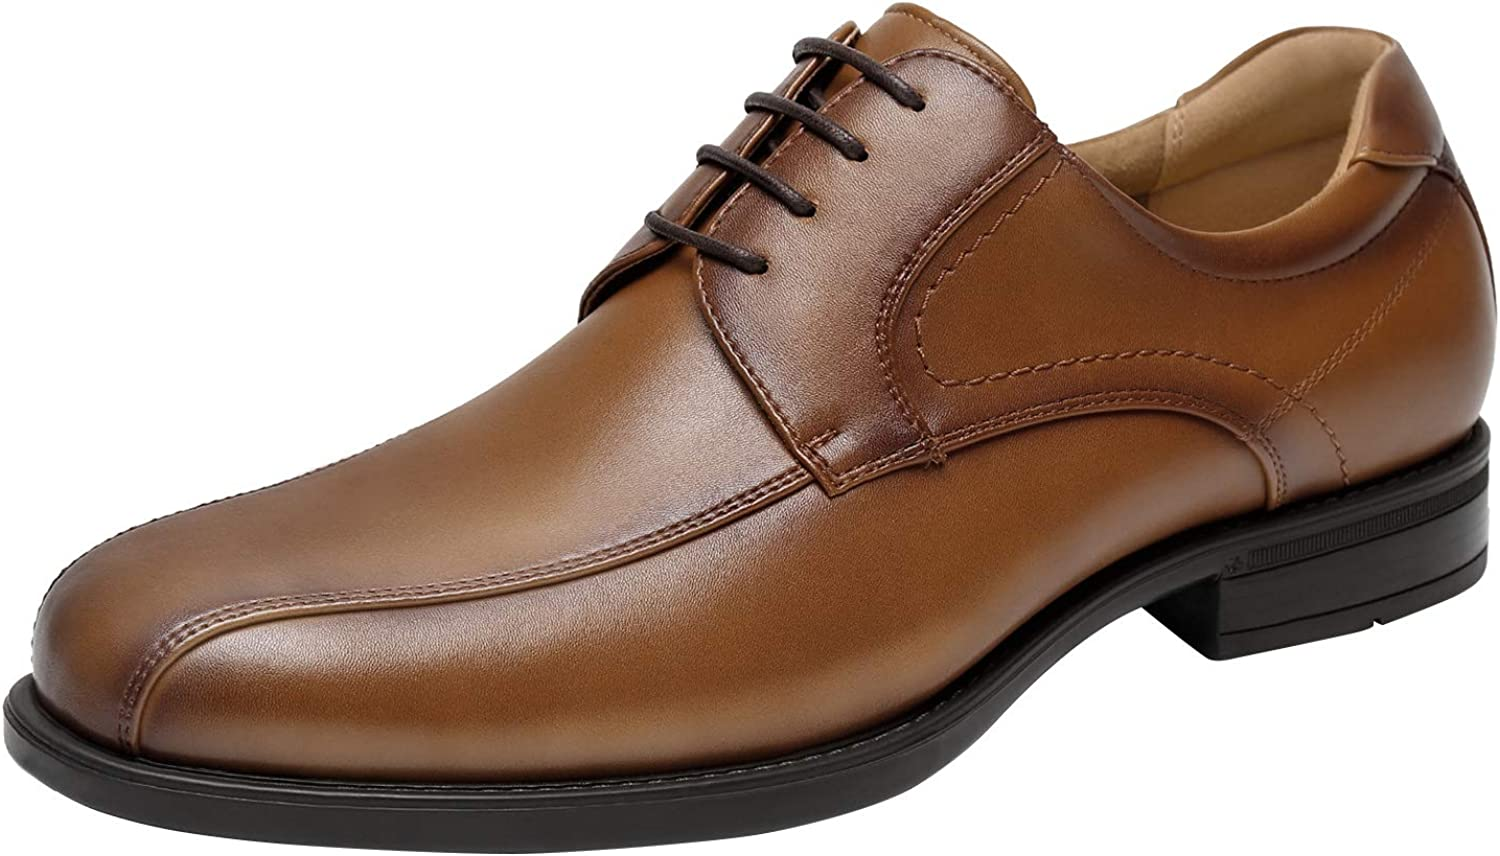 Kararao Men's 5% OFF Oxford Shoes Classic Dress F Now on sale Business Casual